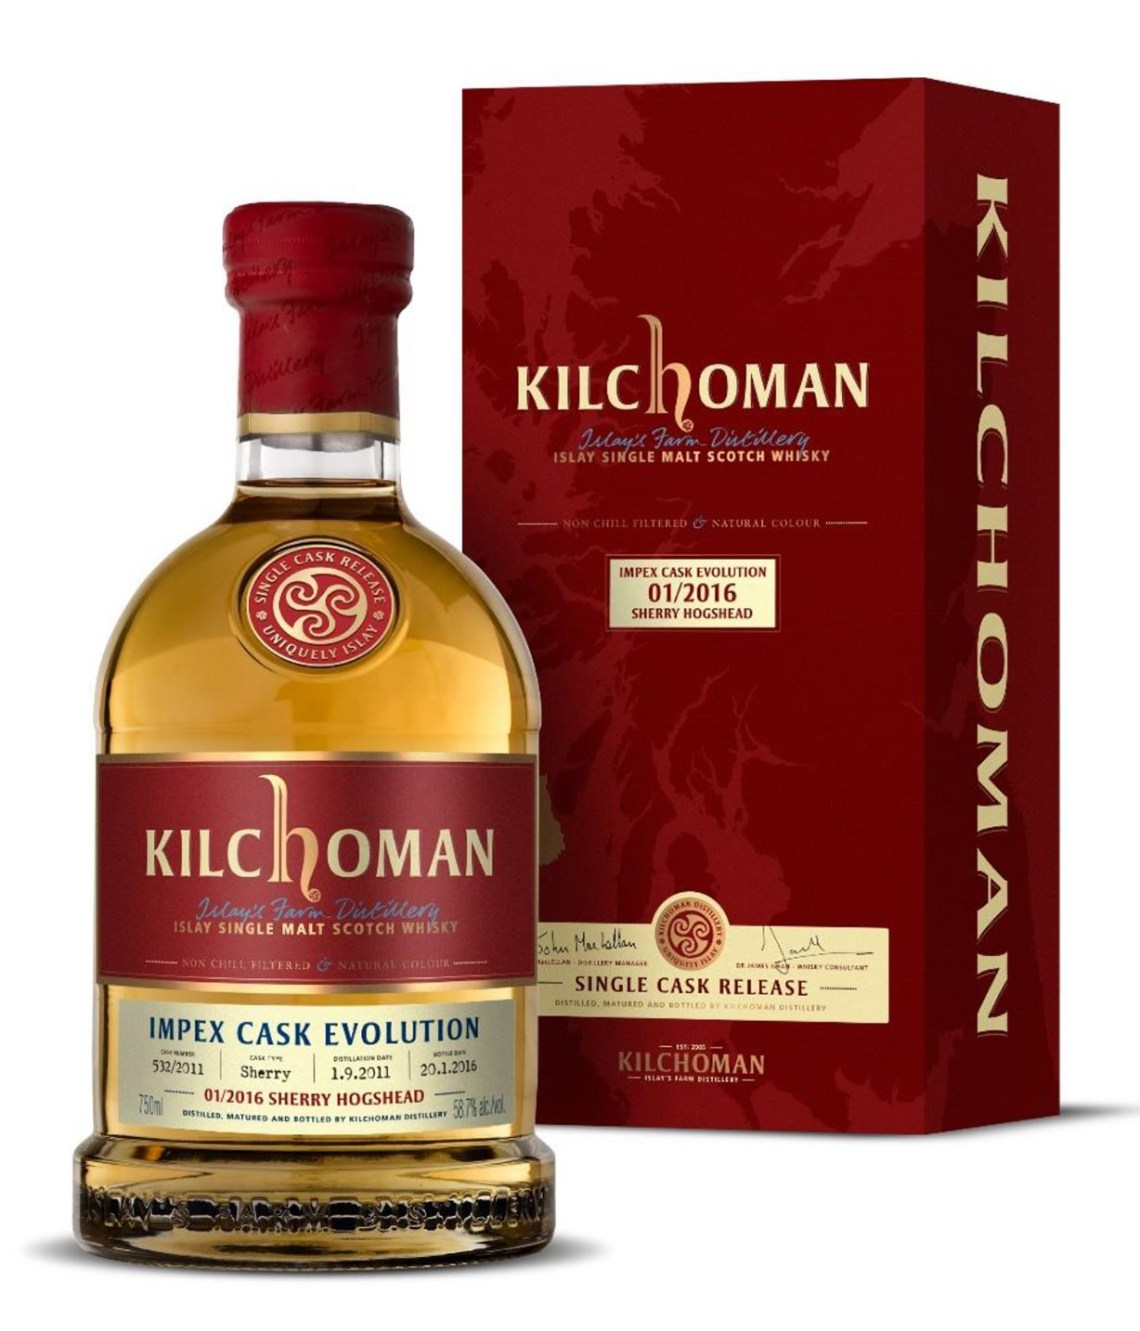 Kilchoman ImpEx Cask Evolution 2/2016 Bourbon Barrel